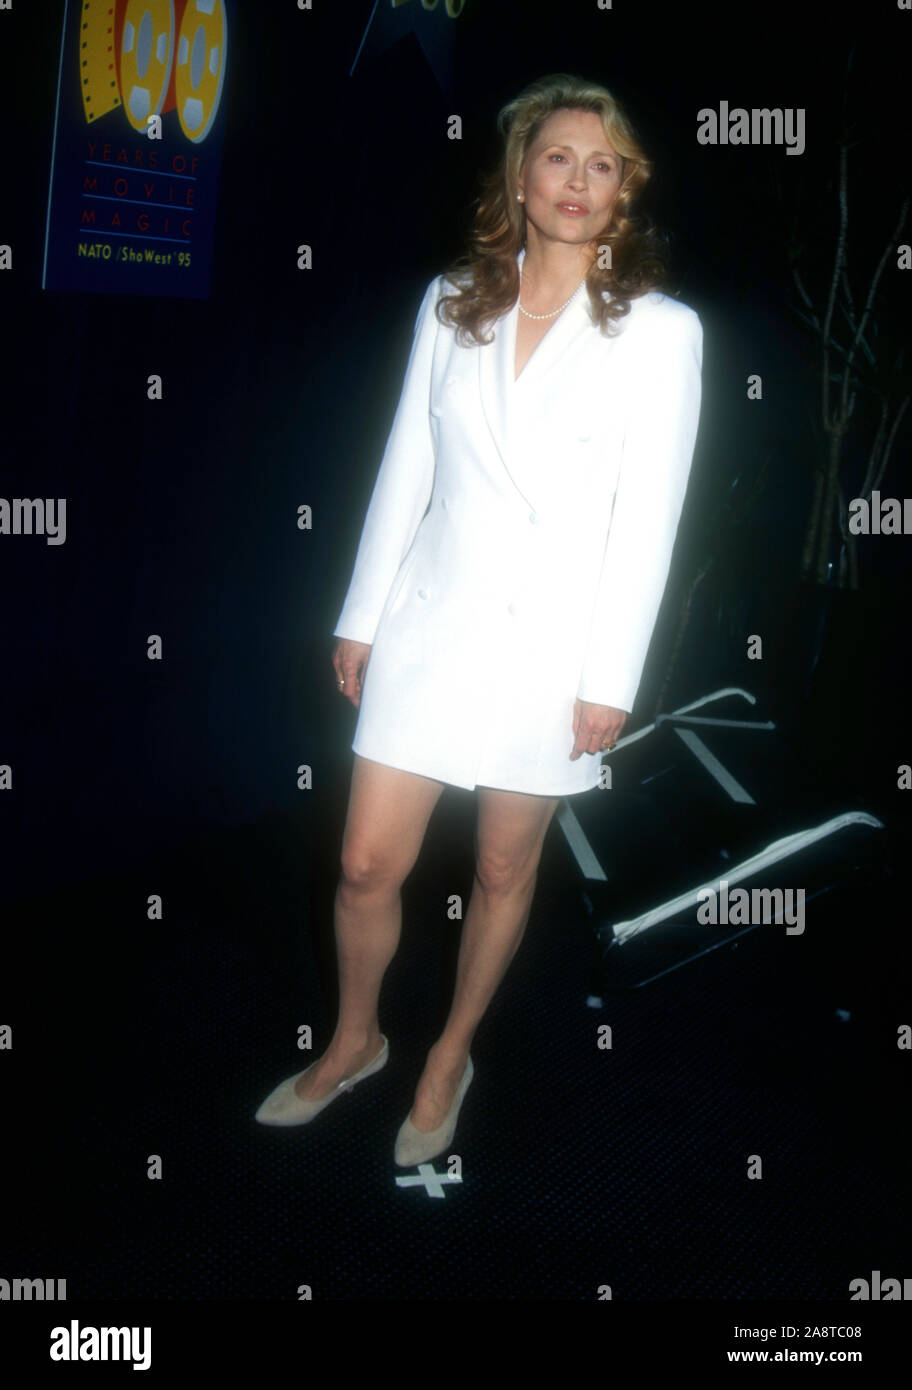 Las Vegas, Nevada, USA 9th March 1995 Actress Faye Dunaway attends the 1995 NATO/ShoWest Convention on March 9, 1995 at Bally's Hotel & Casino in Las Vegas, Nevada, USA. Photo by Barry King/Alamy Stock Photo Stock Photo